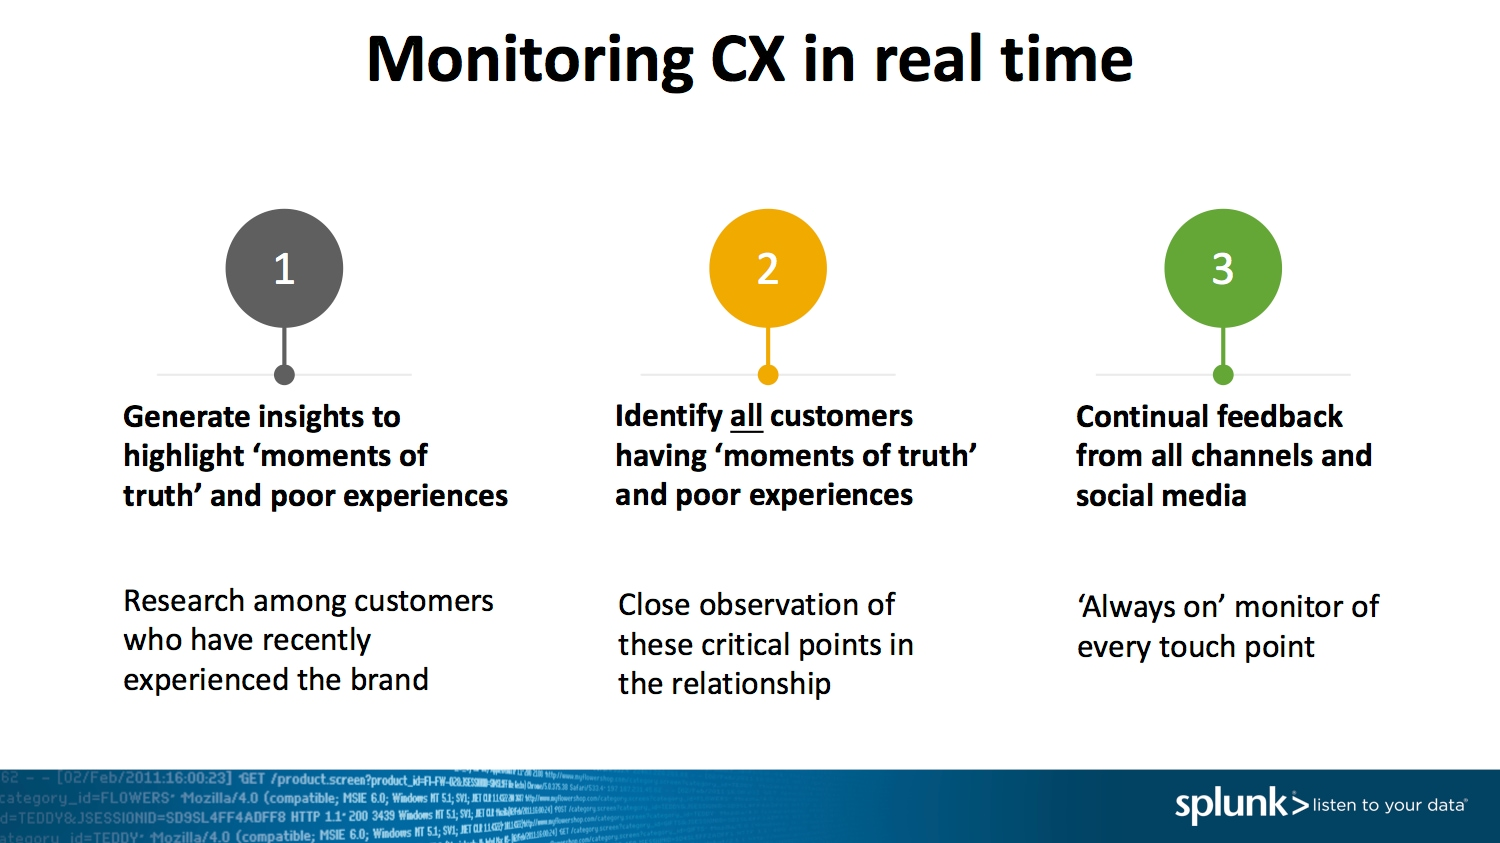 Monitoring CX in real time